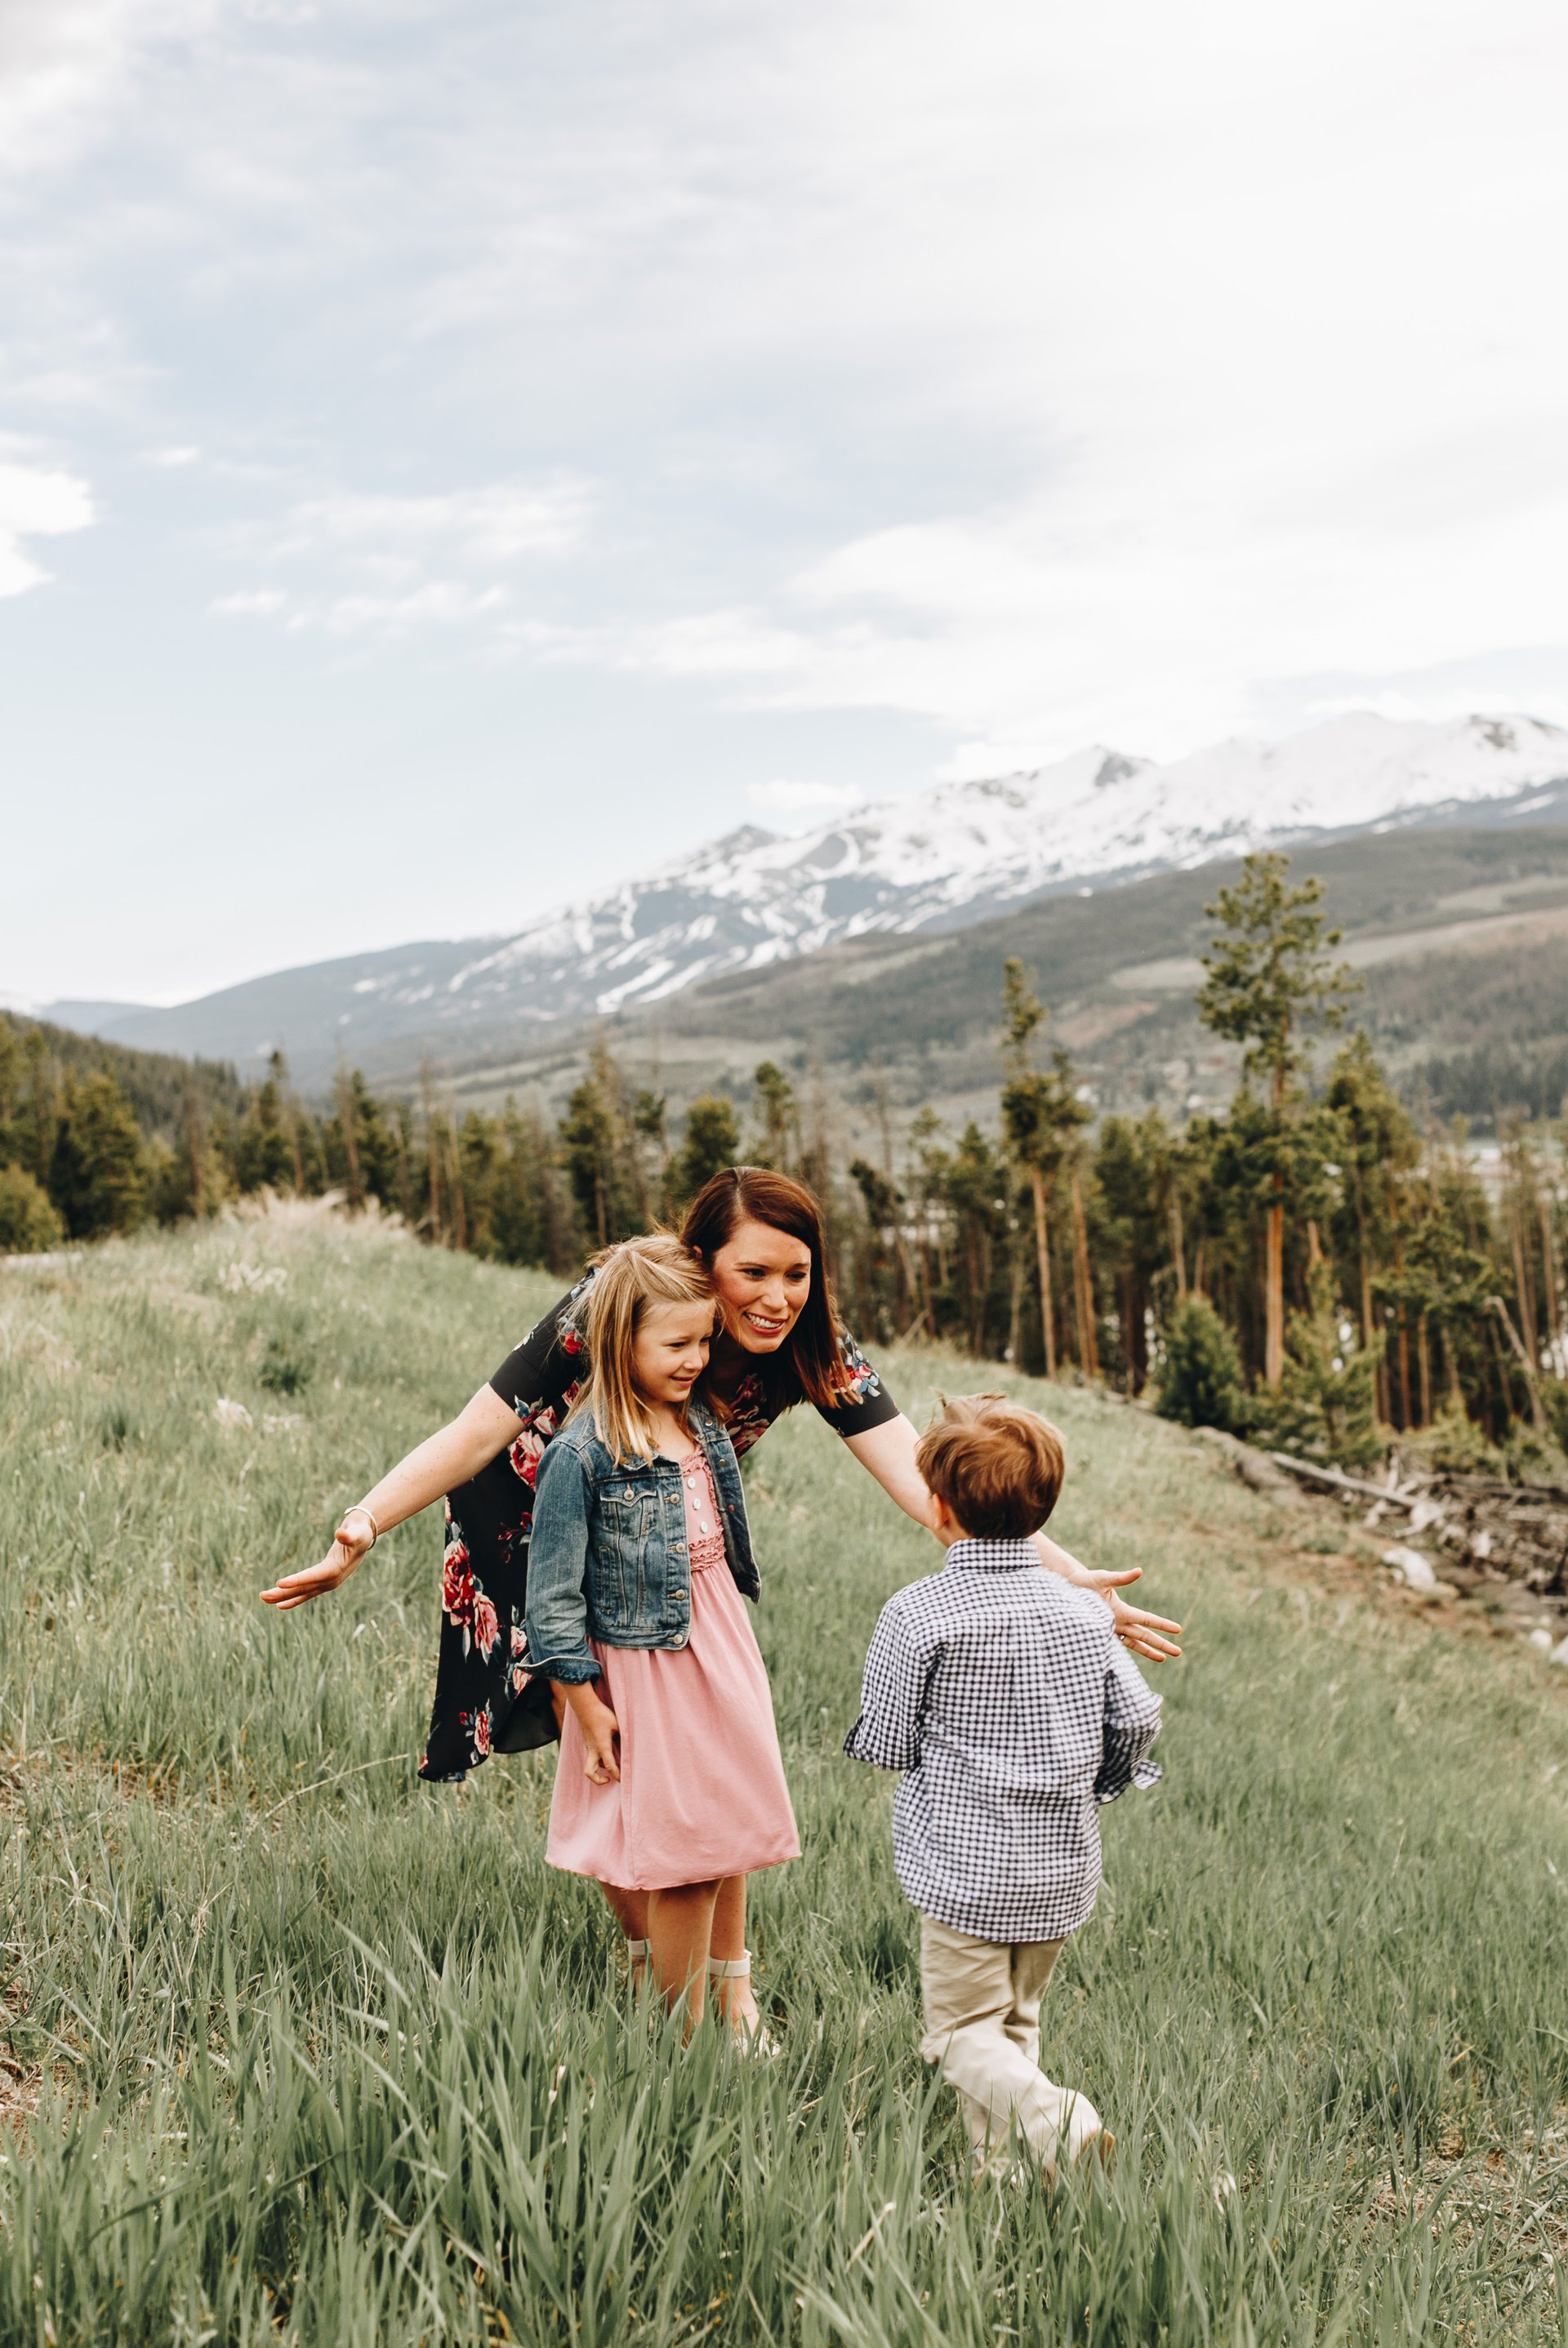 Breckenridge-United States-travel-story-Flytographer-11